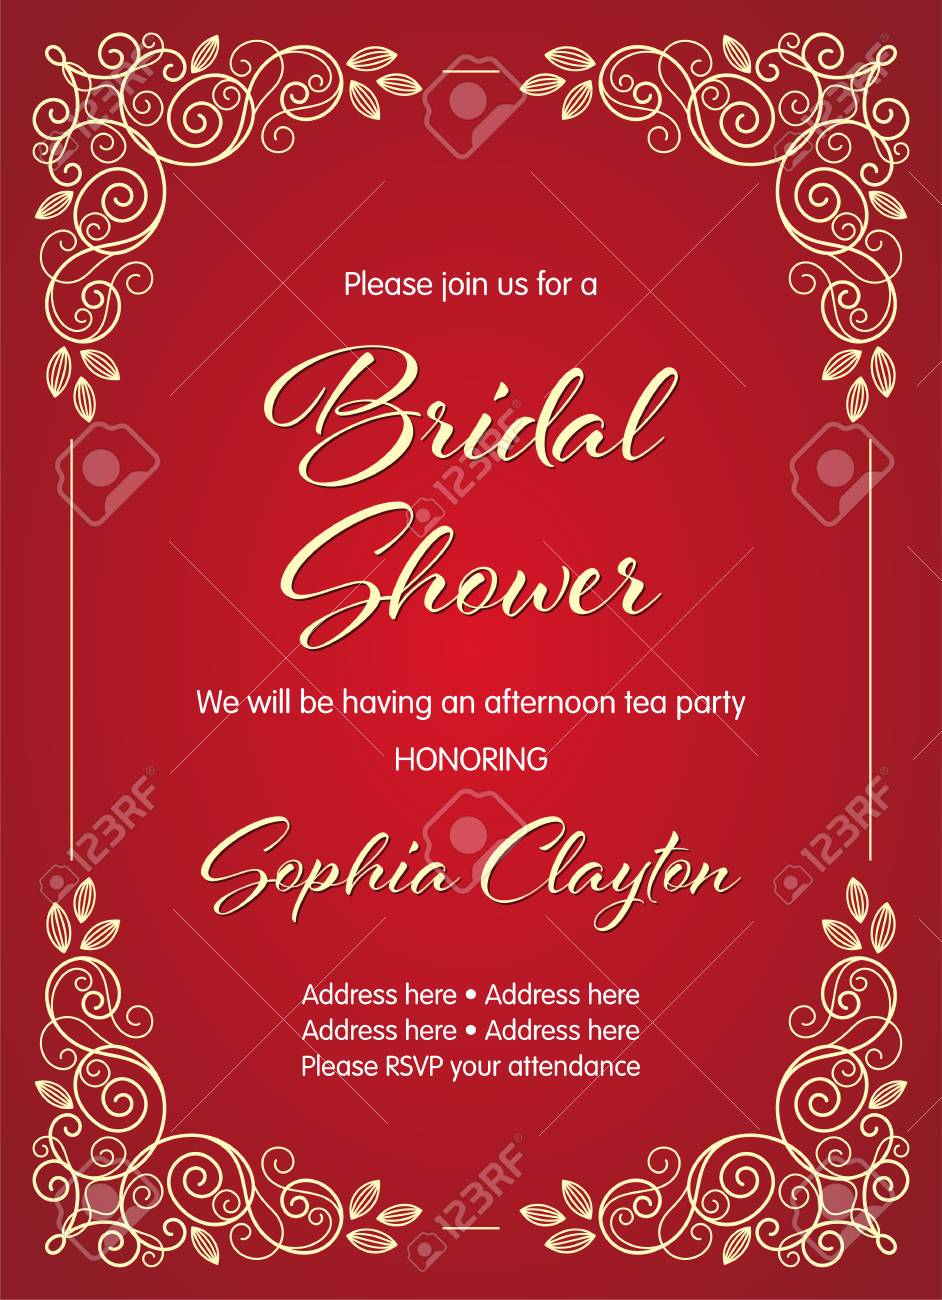 Bridal Shower Invitation In Retro Style With Decorative Design ...